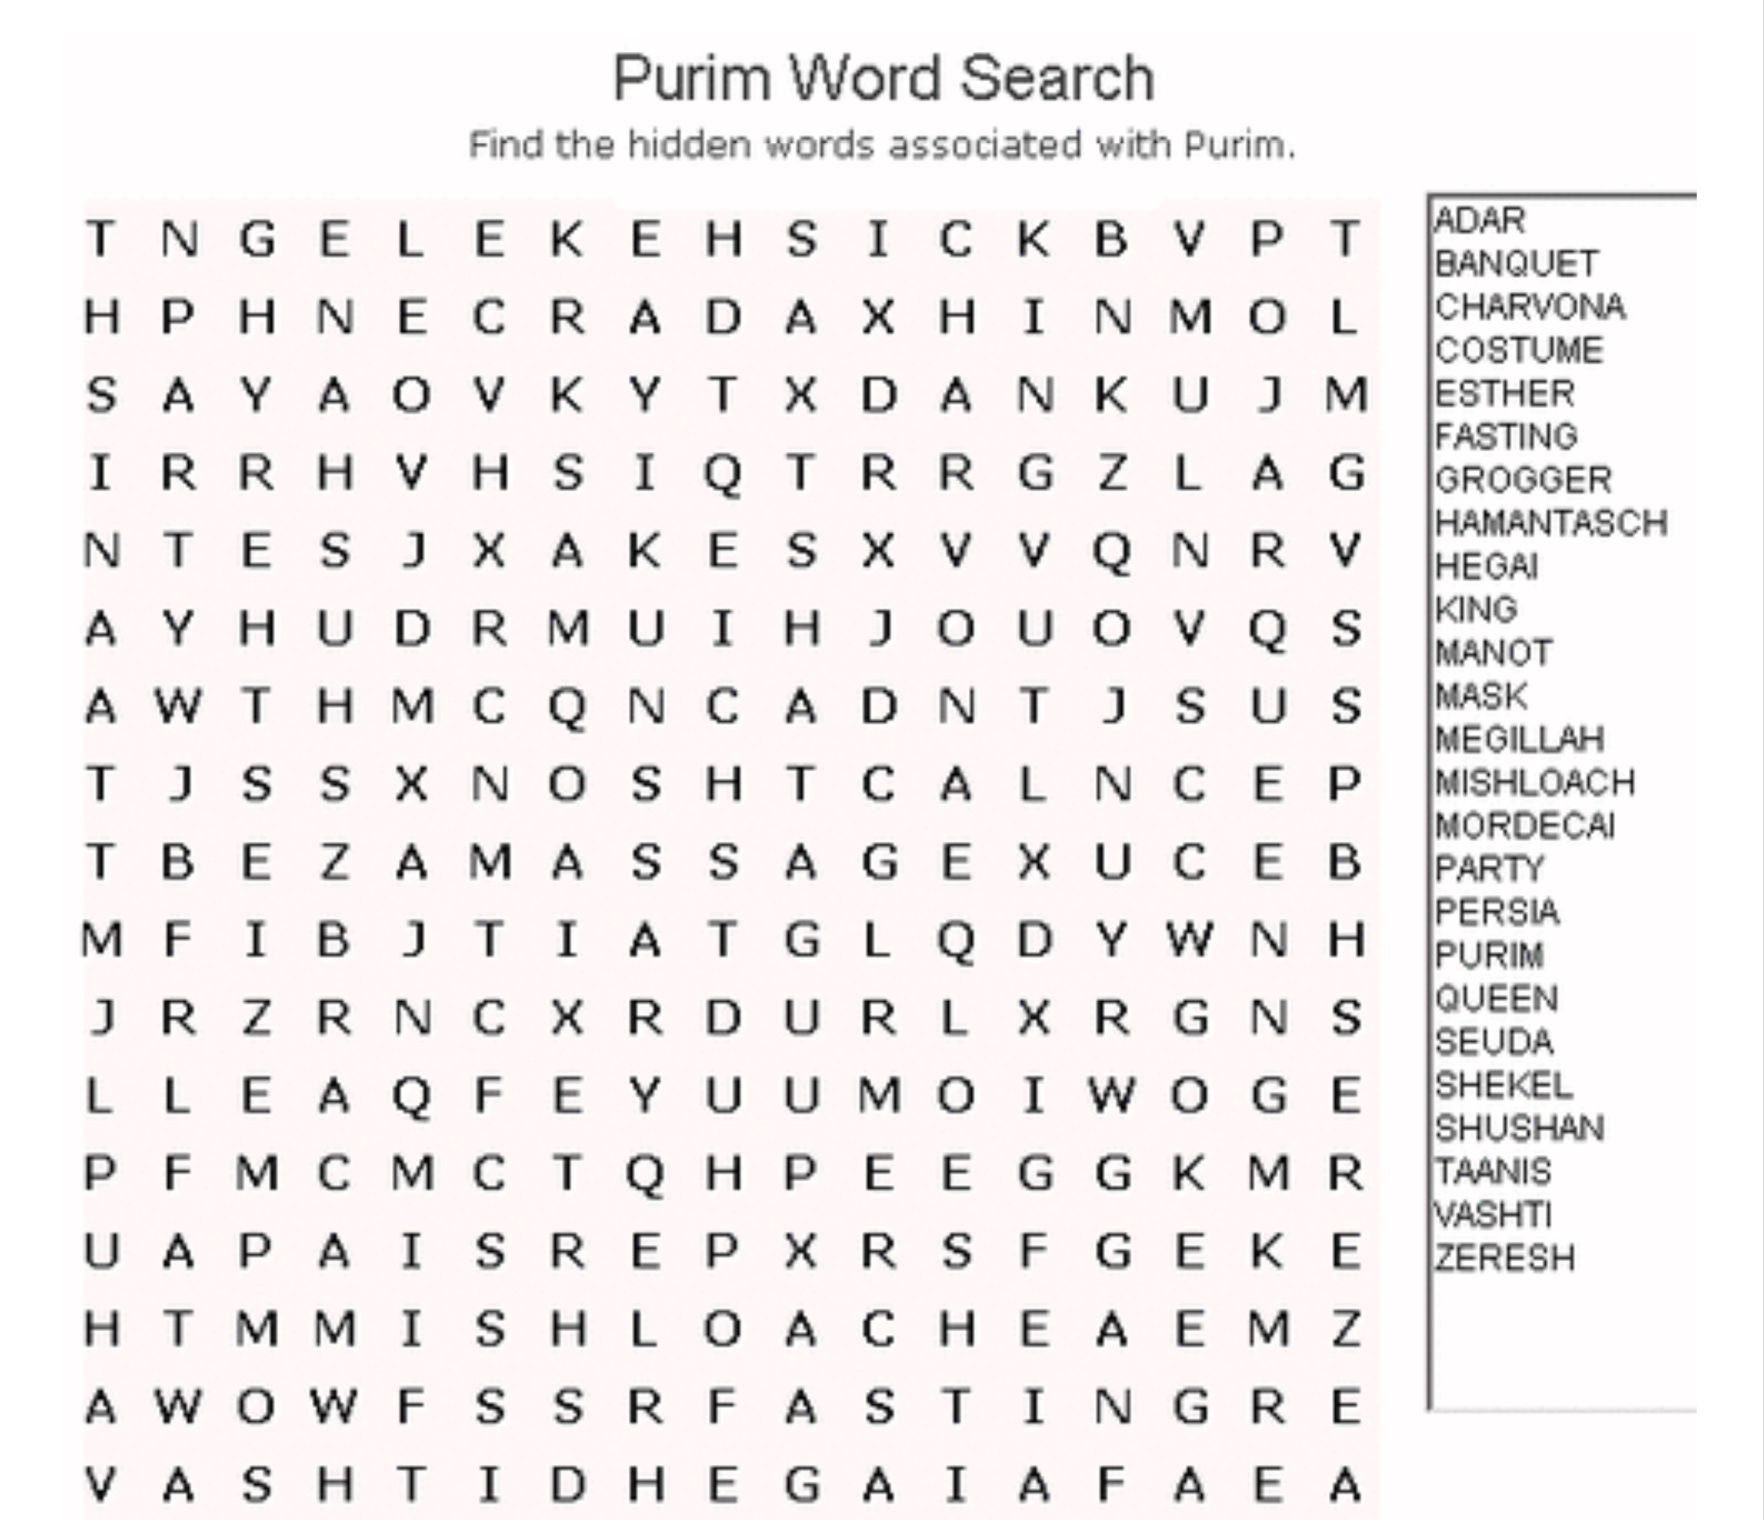 Purim Word Search | Kitah Dalet | Free Word Search Puzzles, Word - Printable Crossword Puzzles And Word Searches